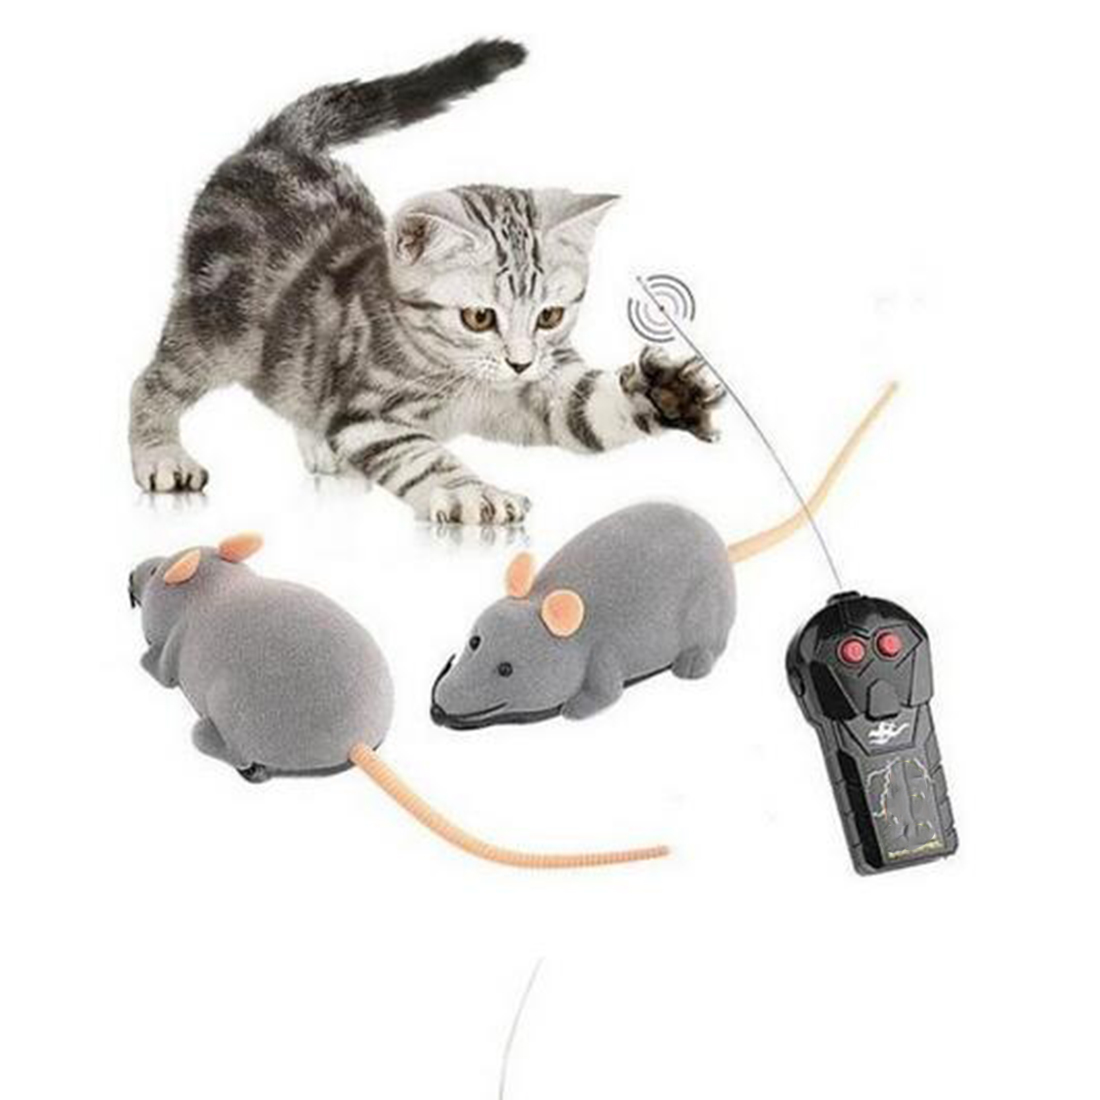 Fun Cat Toys : Remote control dog toy for kids reviews online shopping